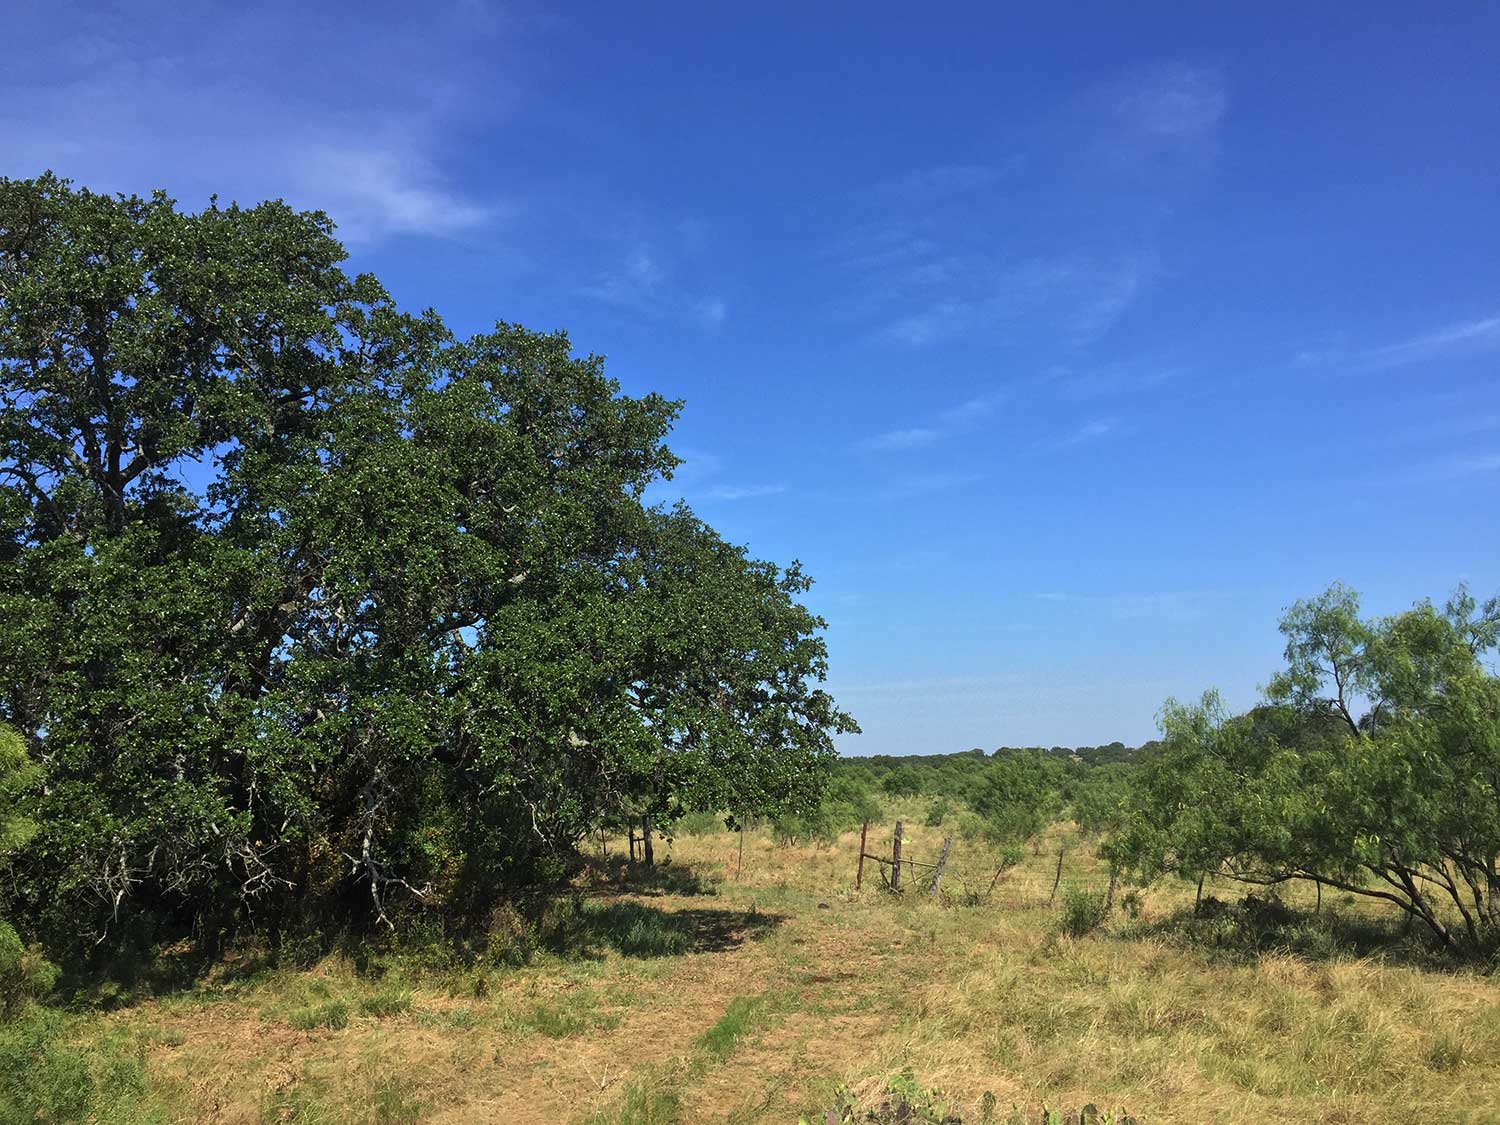 Fredericksburg-Realty-Hill-Country-Real-Estate-Farm-and-ranch-land.jpg